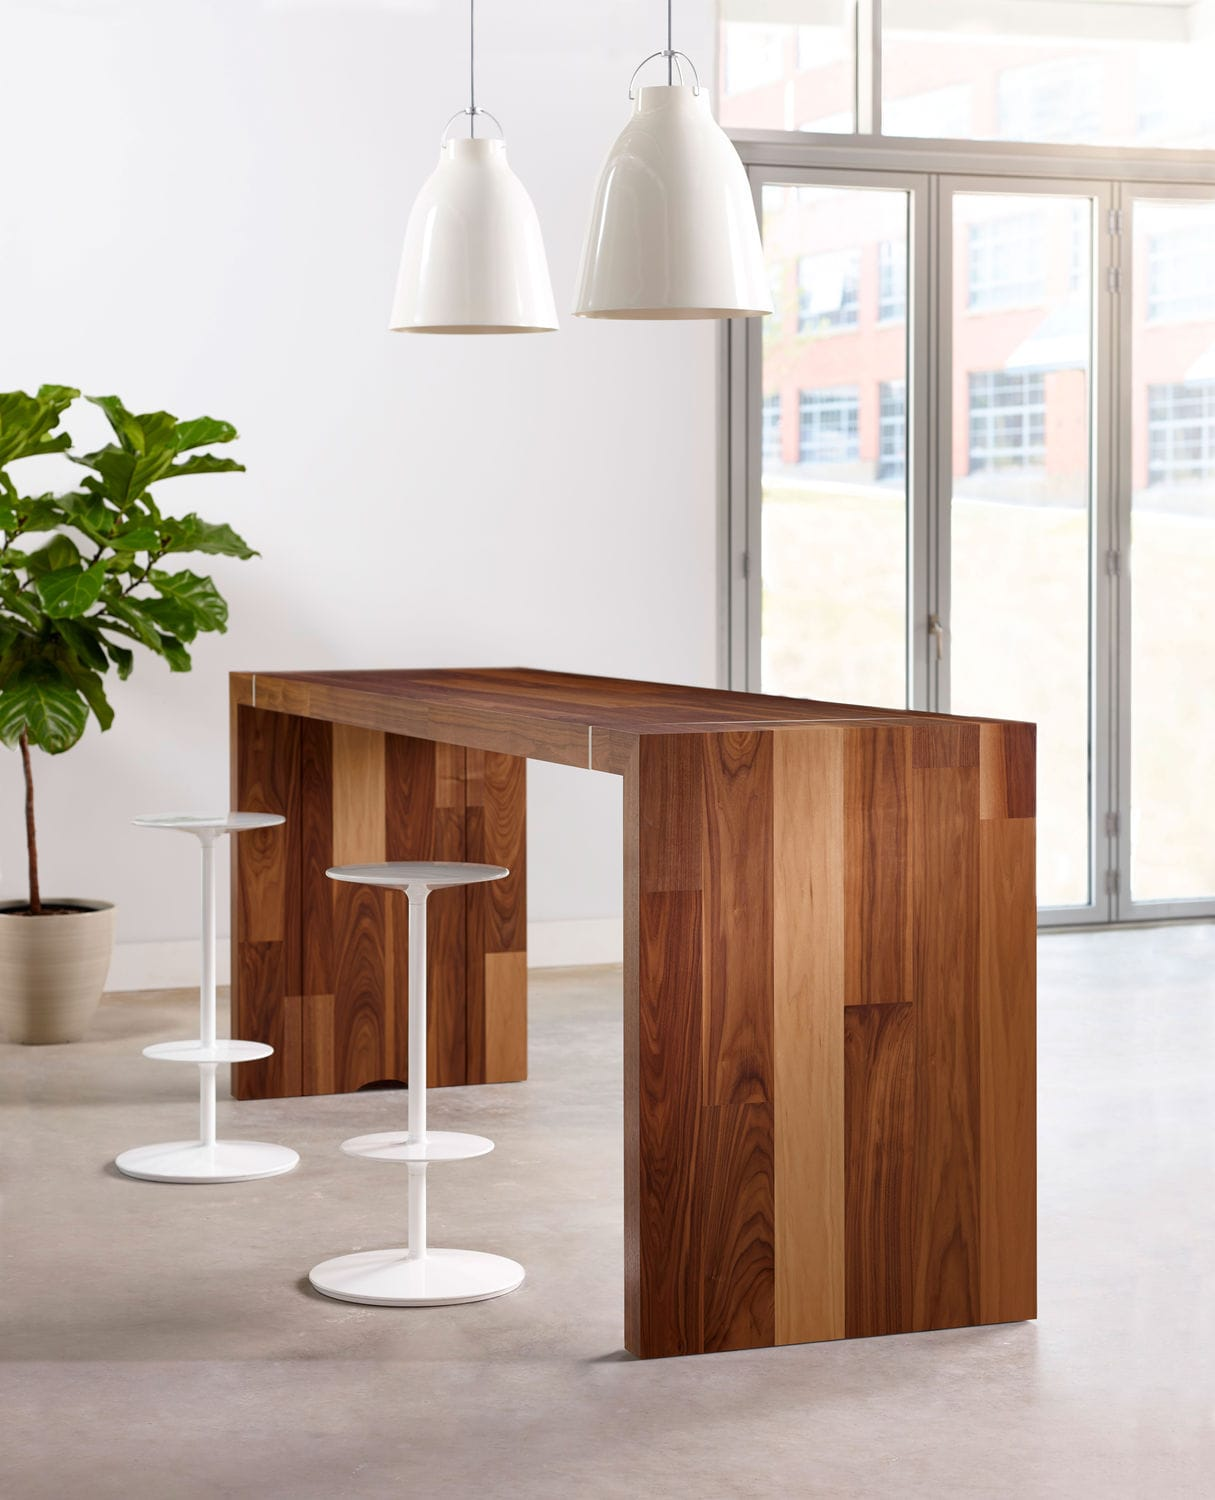 contemporary high bar table  wooden  rectangular  commercial  - contemporary high bar table  wooden  rectangular  commercial tesano byjoey ruiter nucraft